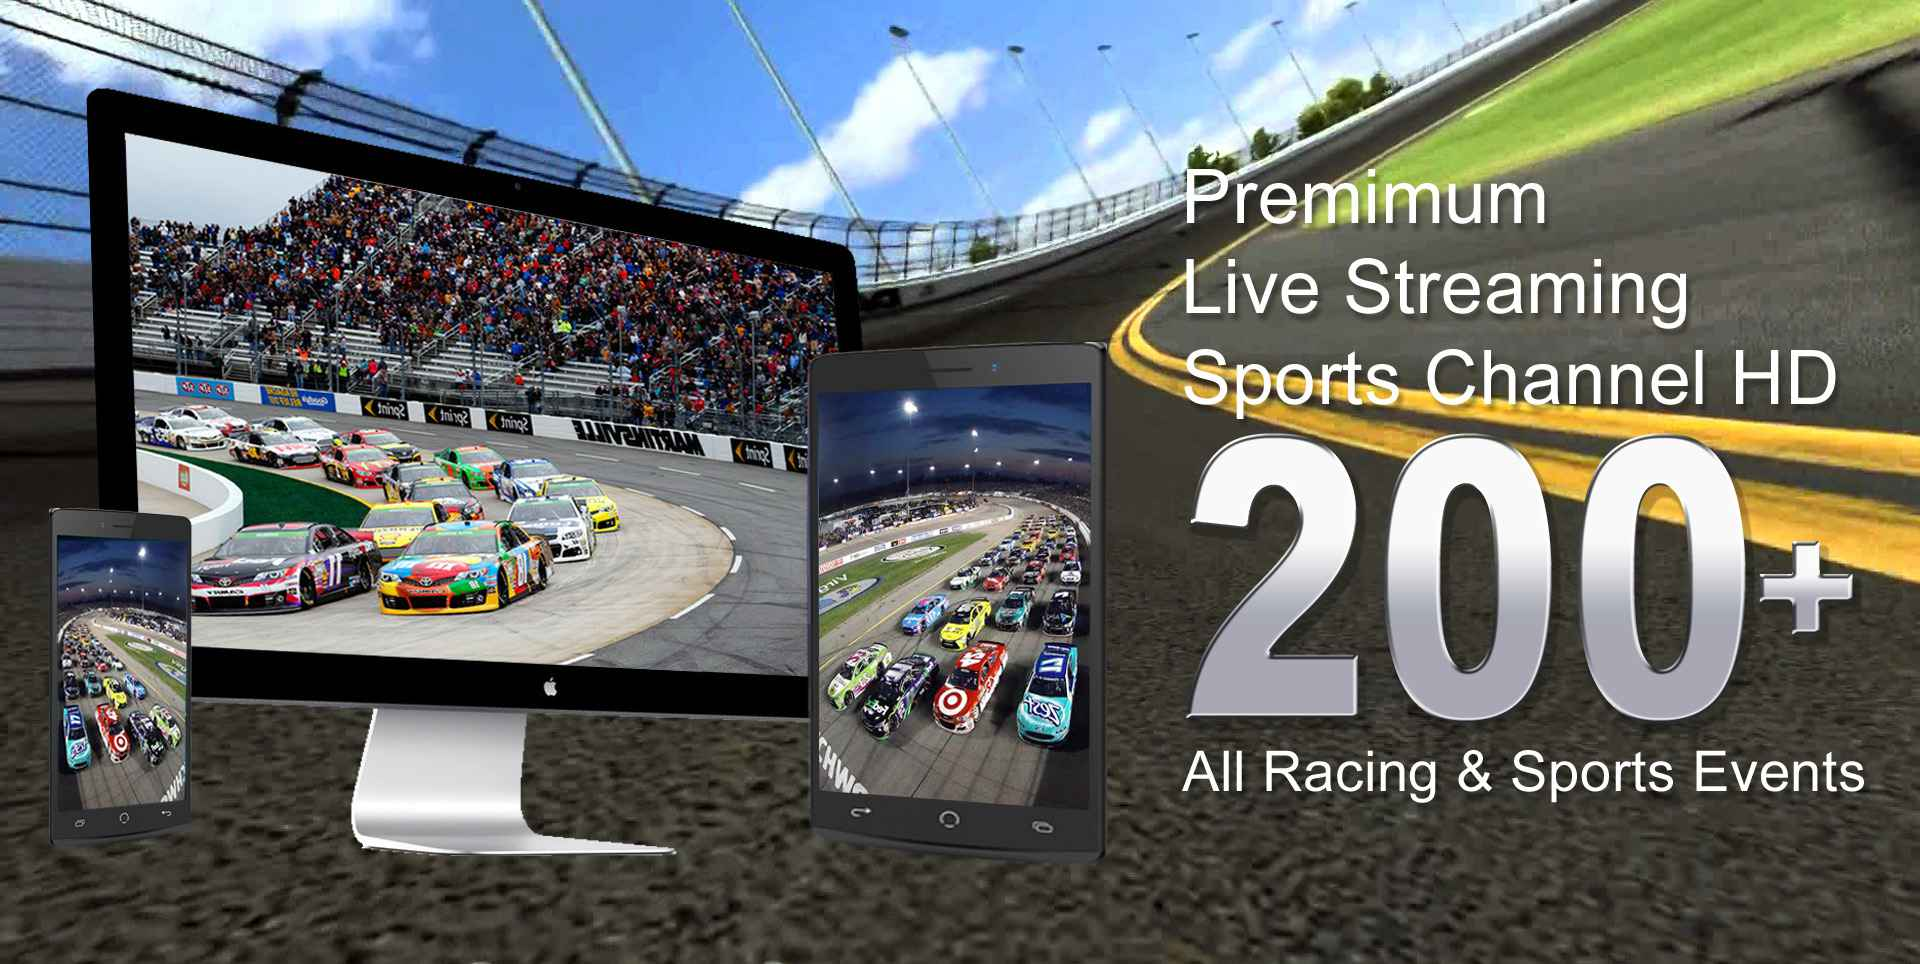 aaa-400-drive-for-autism-nascar-live-stream